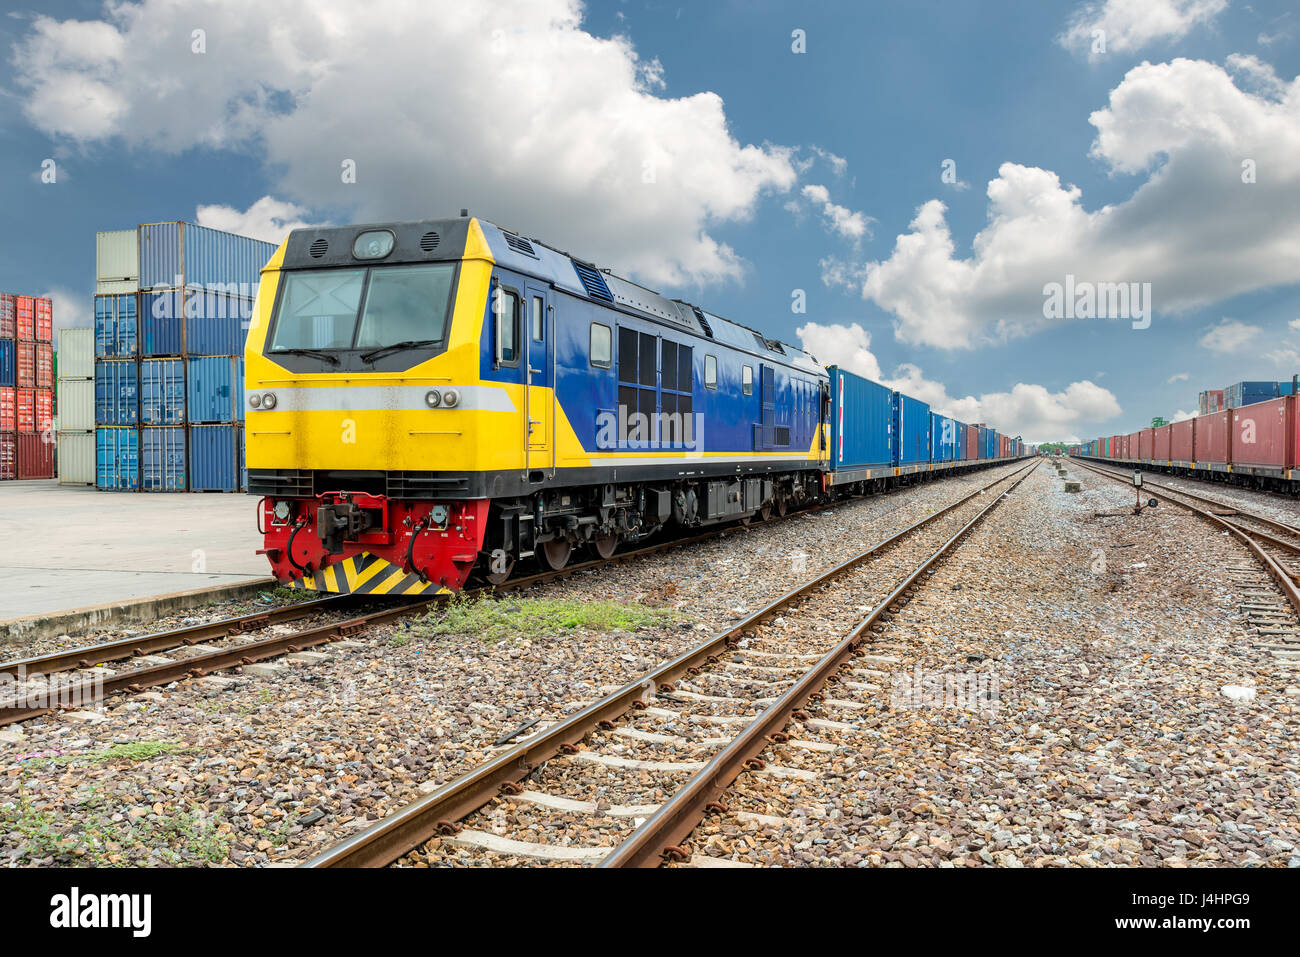 Cargo train platform with freight train container at depot in port use for export logistics background. - Stock Image